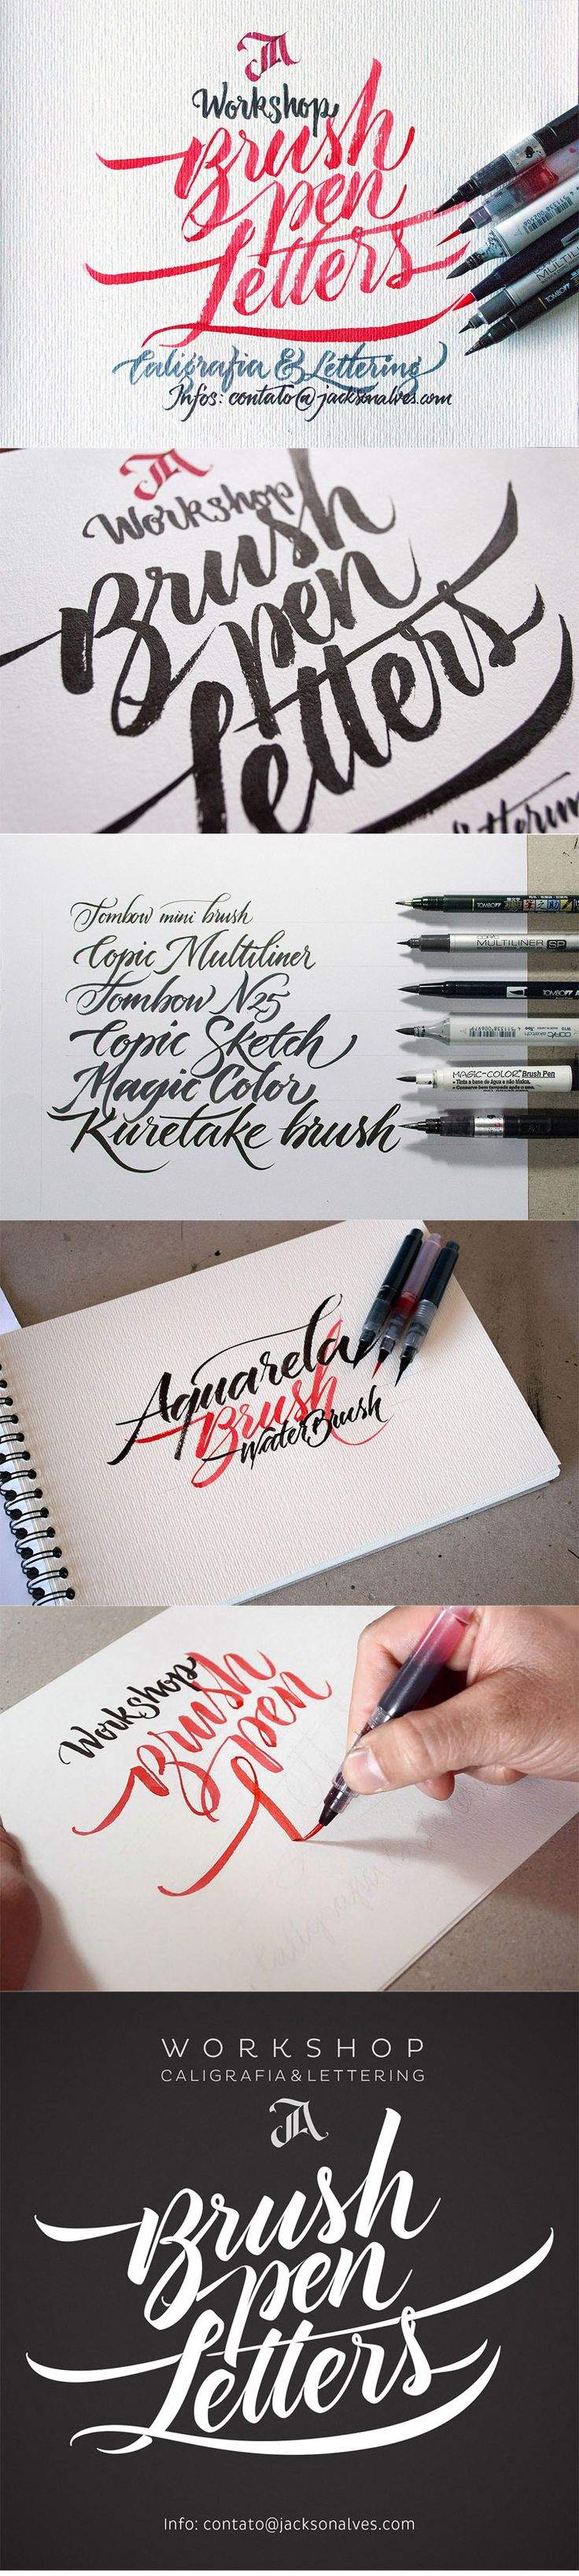 Brush pen Letters Workshop - custom lettering by Jackson Alves https://www.behance.net/gallery/18025625/Workshop-Brush-pen-Letters